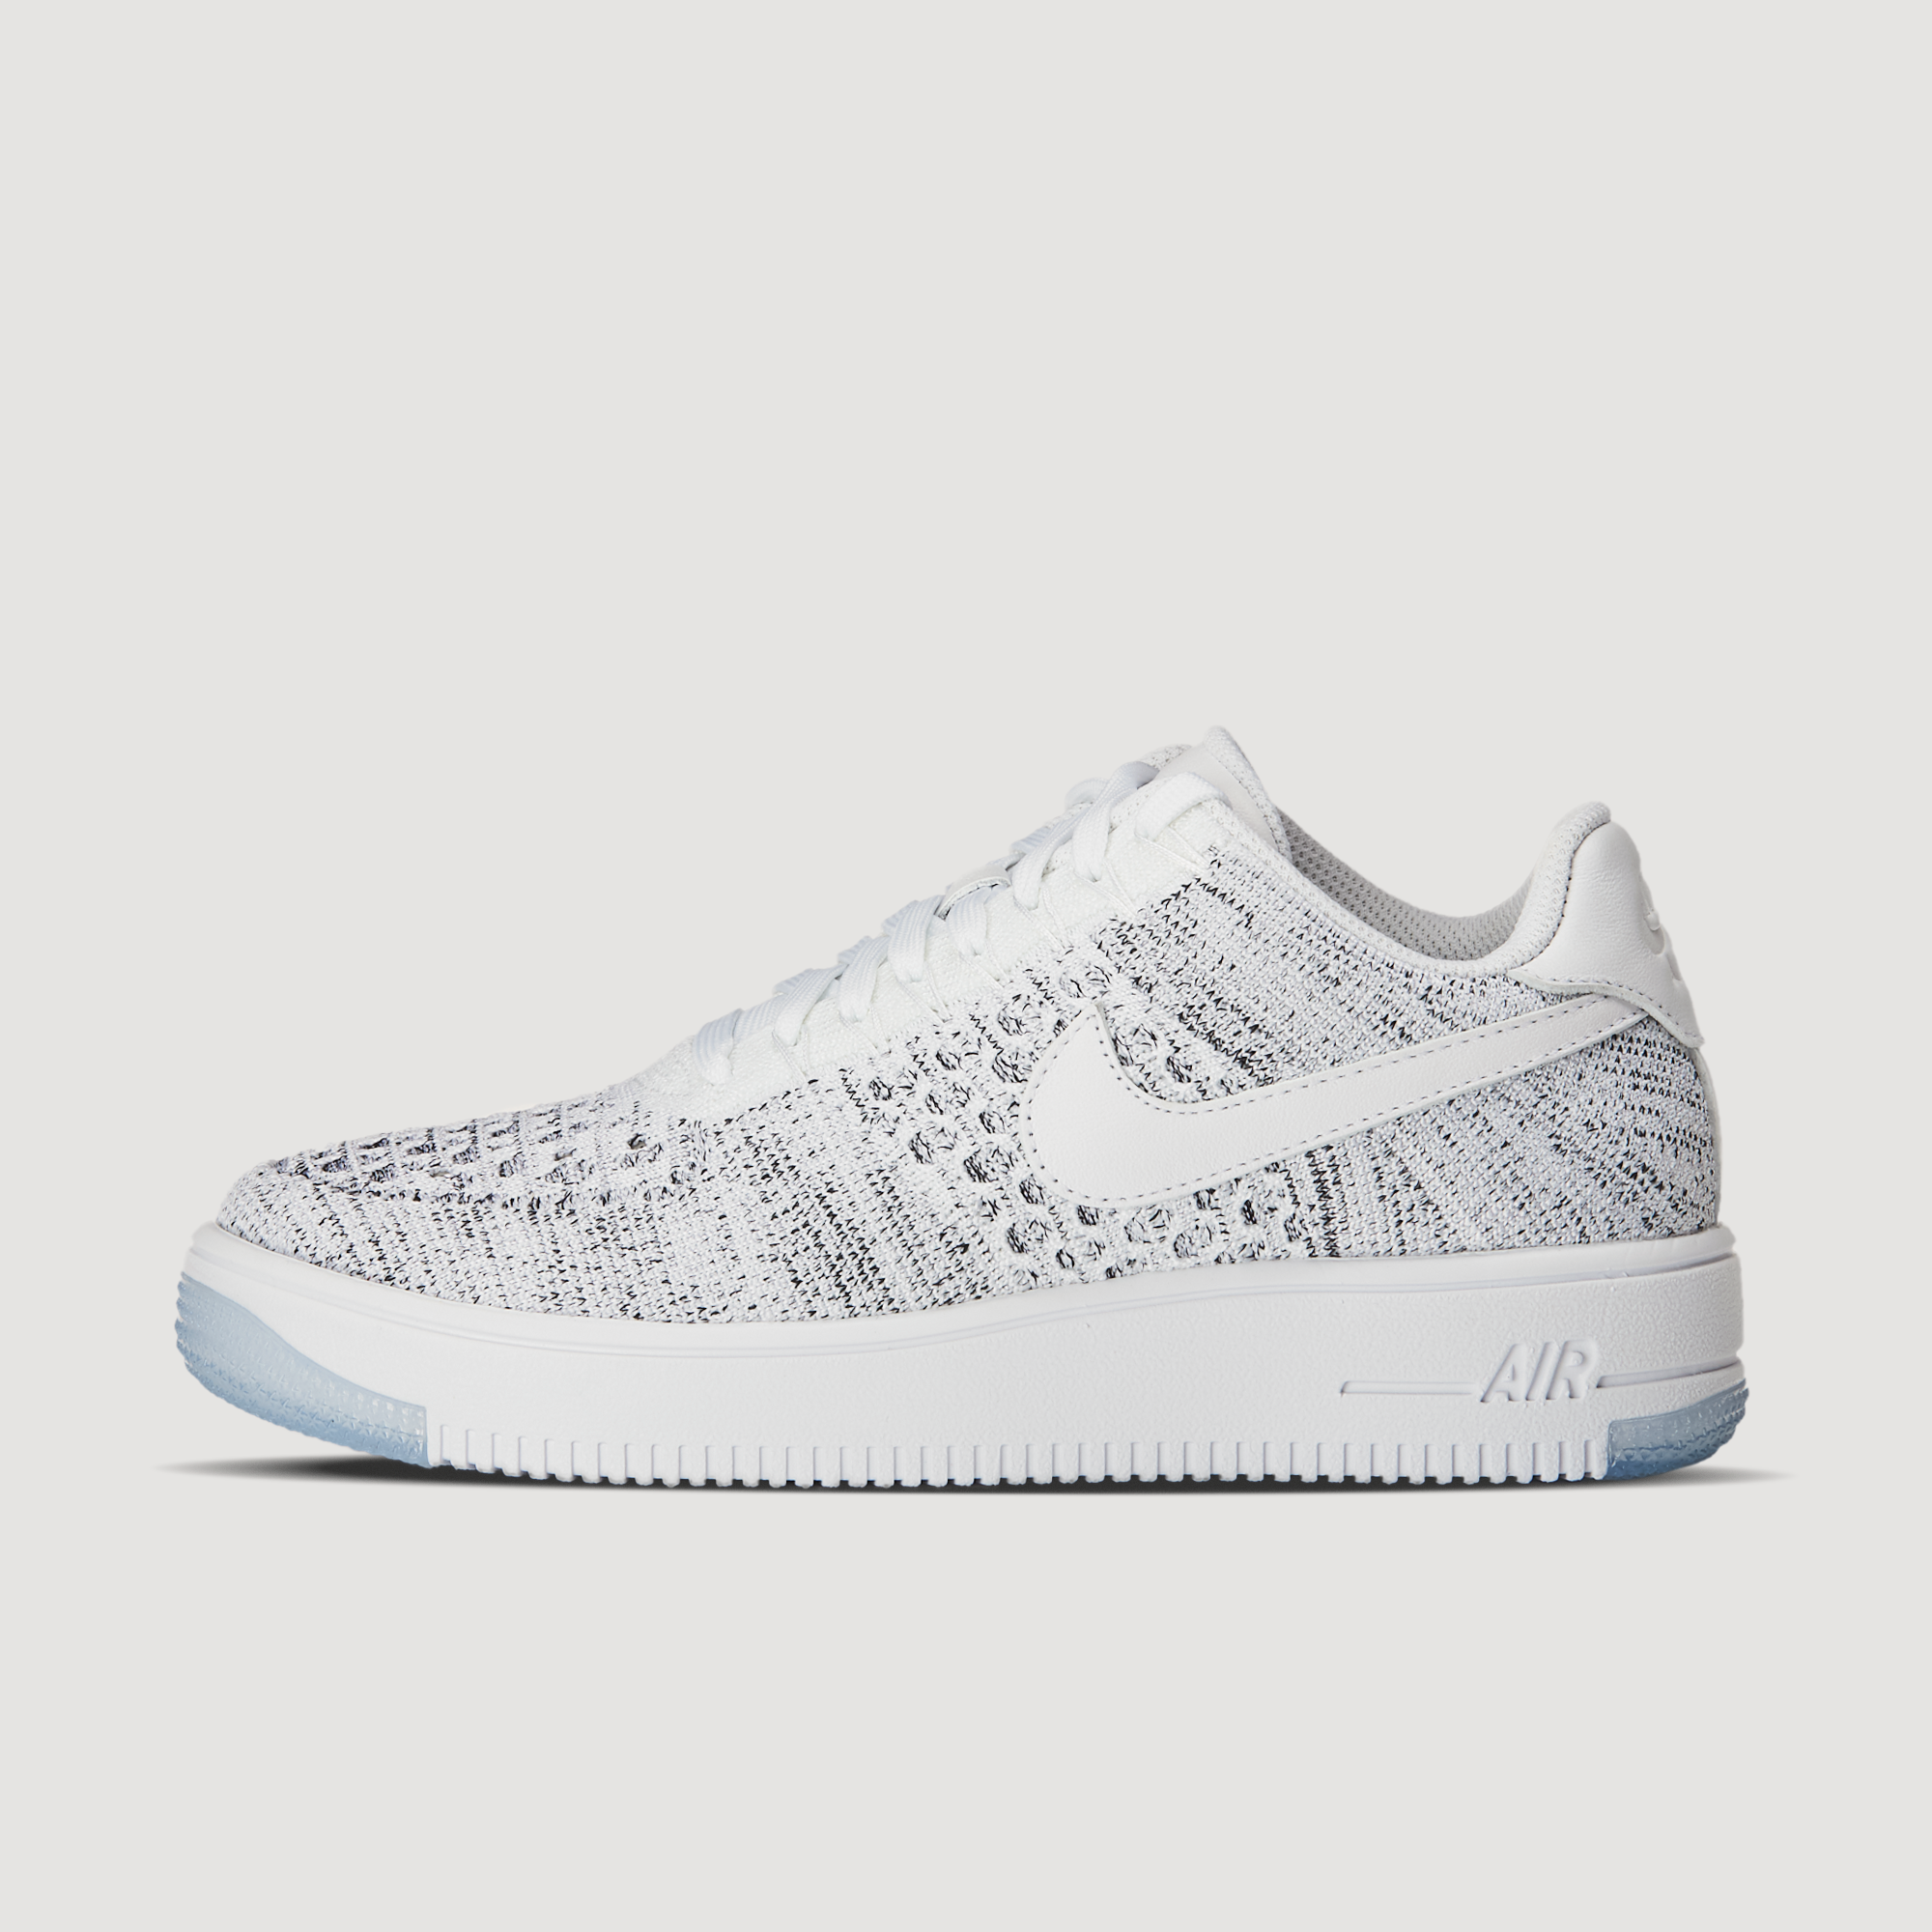 Air Shoes Pig Flyknit Force 1 Low vwm8n0ON